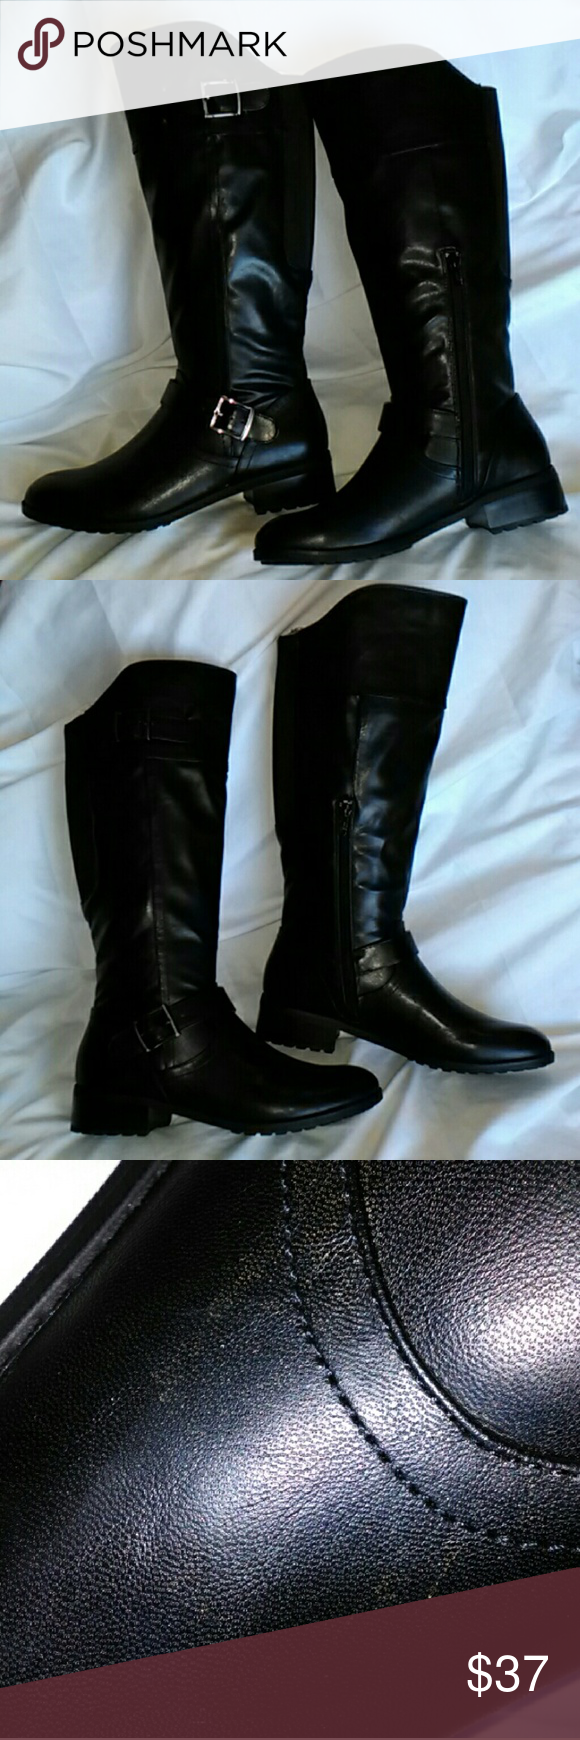 """Andrew Geller Ideh Women's Black Riding Boots 8.5M Pull on design  Half zipper at inset Strap and buckle accents Soft faux leather upper Rubber traction outsole 1-1/2"""" block heal Rear stretch panel 15"""" Shaft height 15"""" Calf circumference  Brand New in box. Have a minor manufacturer imperfection on the right shoe upon close look shown in photo. Retail for $89.99. ❌No Trades Andrew Geller Shoes Winter & Rain Boots"""